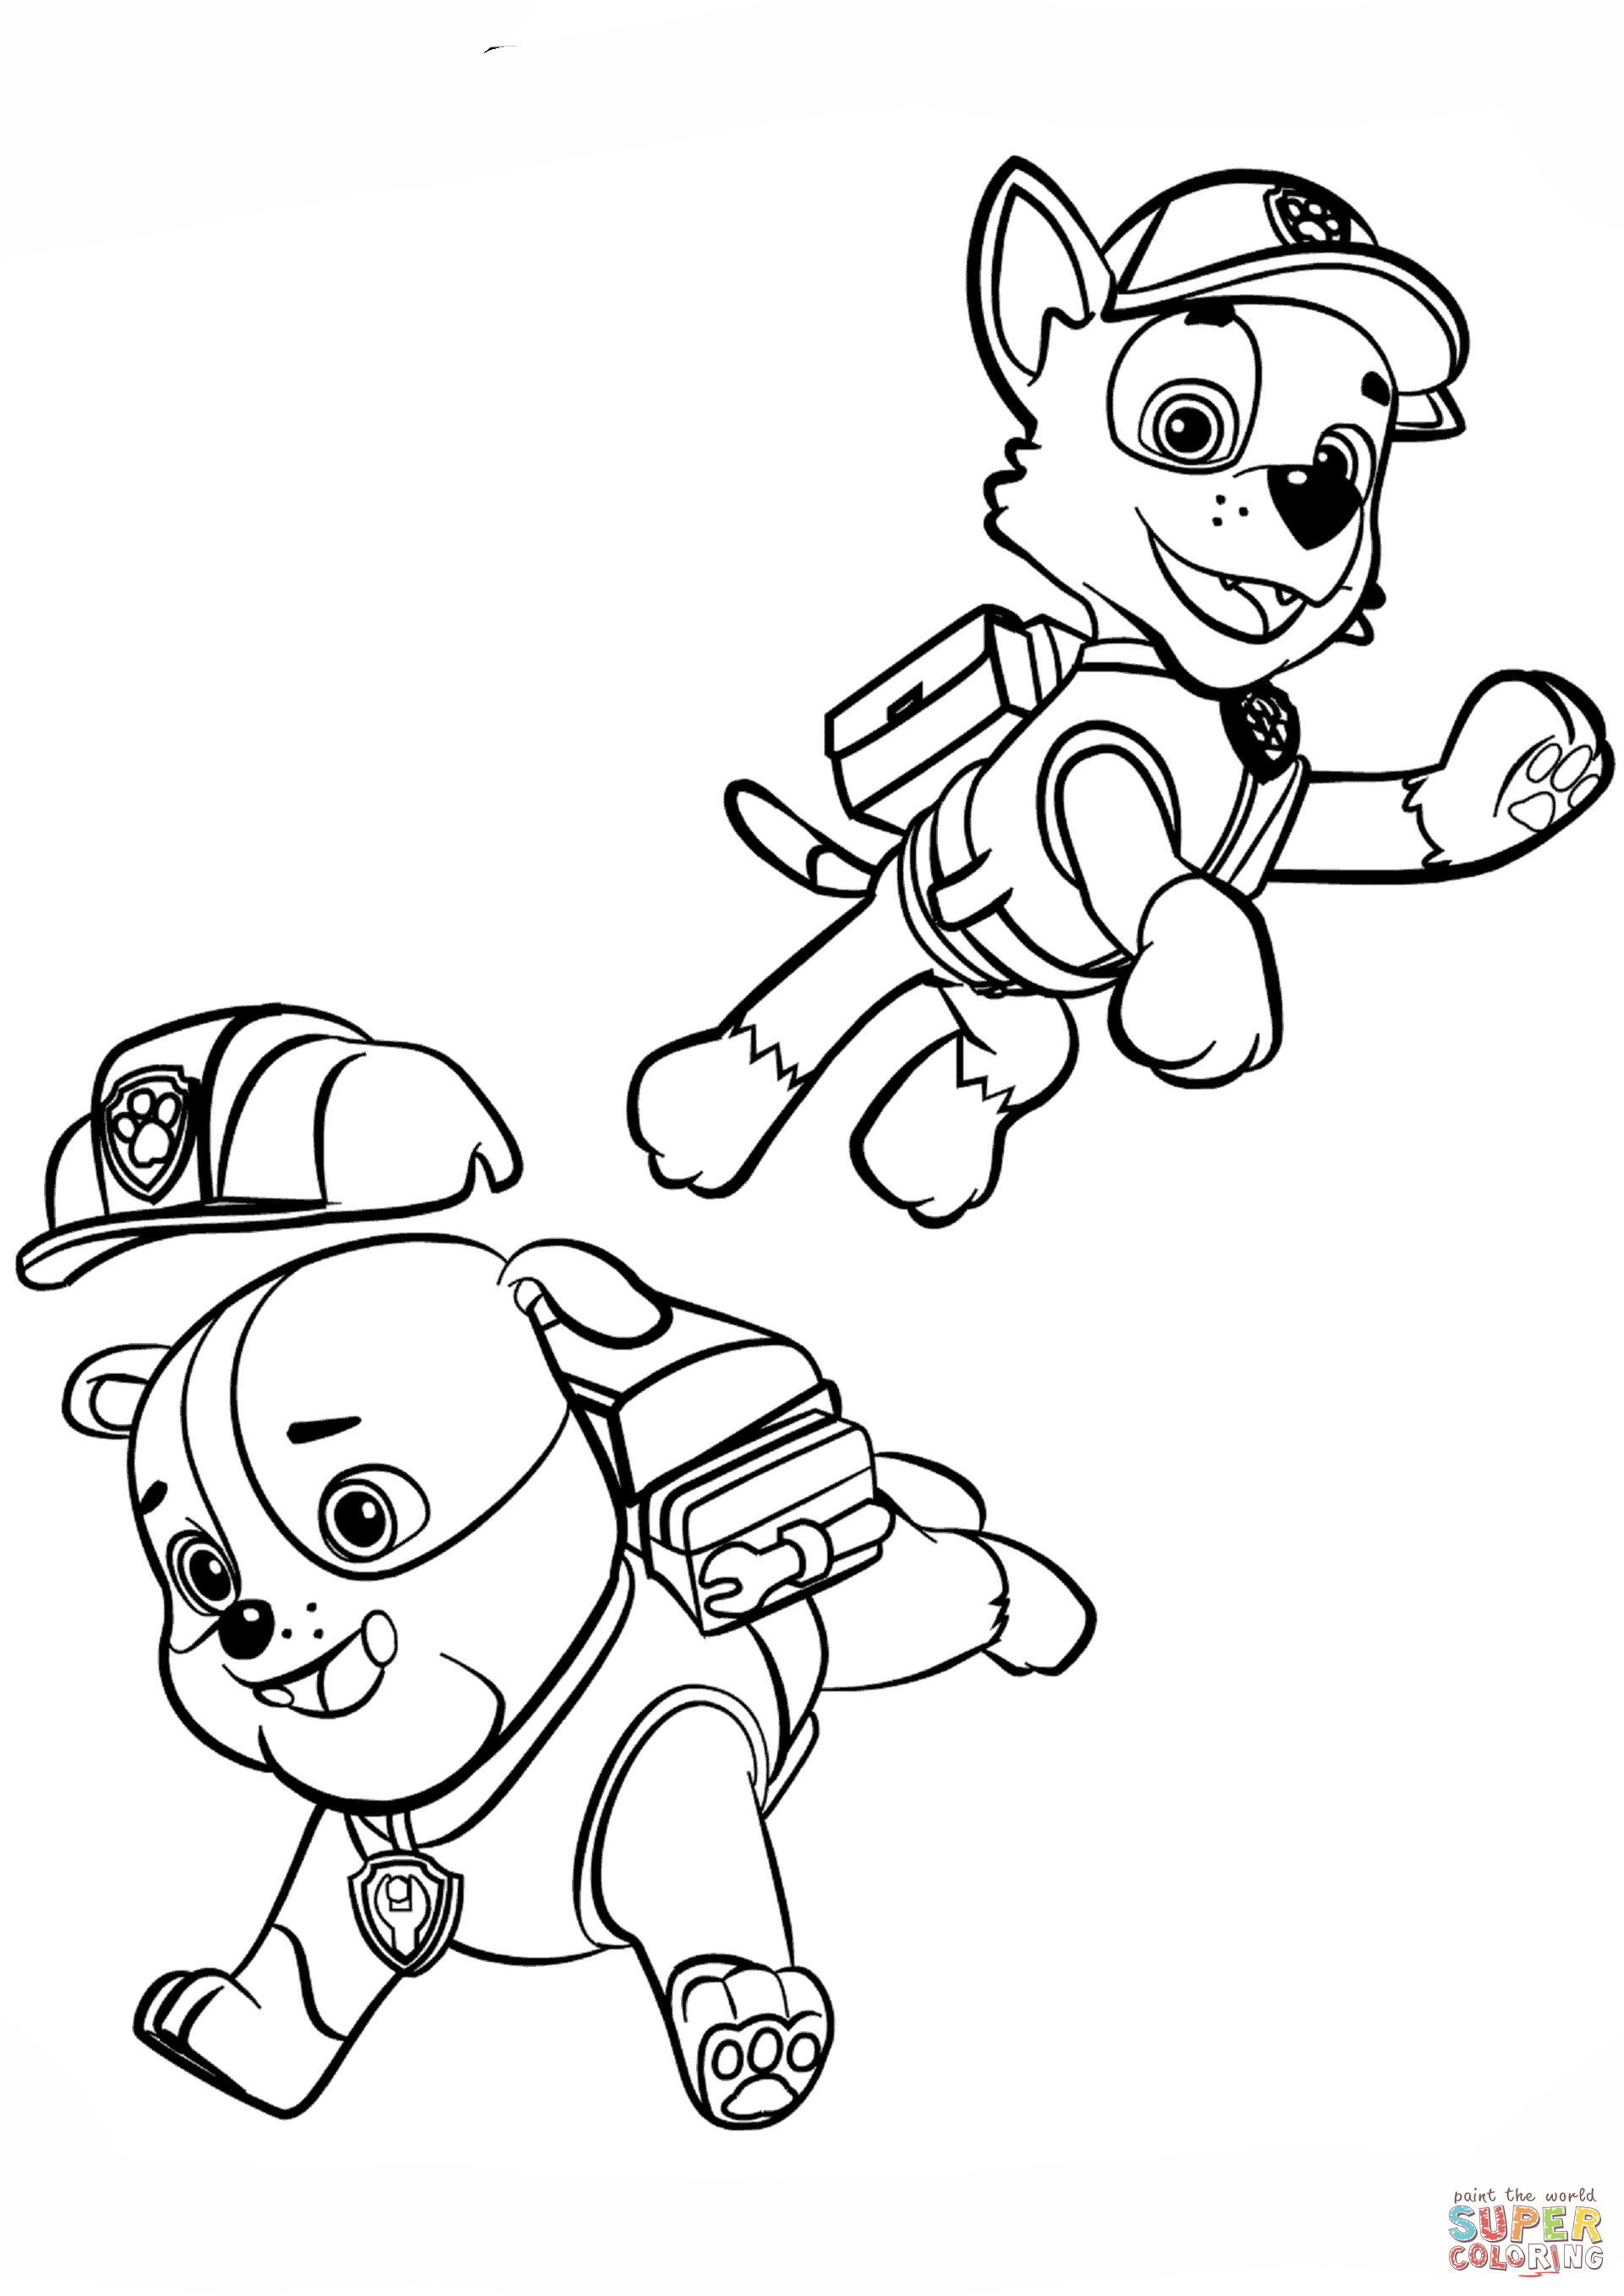 1920x2715 Odd Rubble Paw Patrol Coloring Page And Rocky